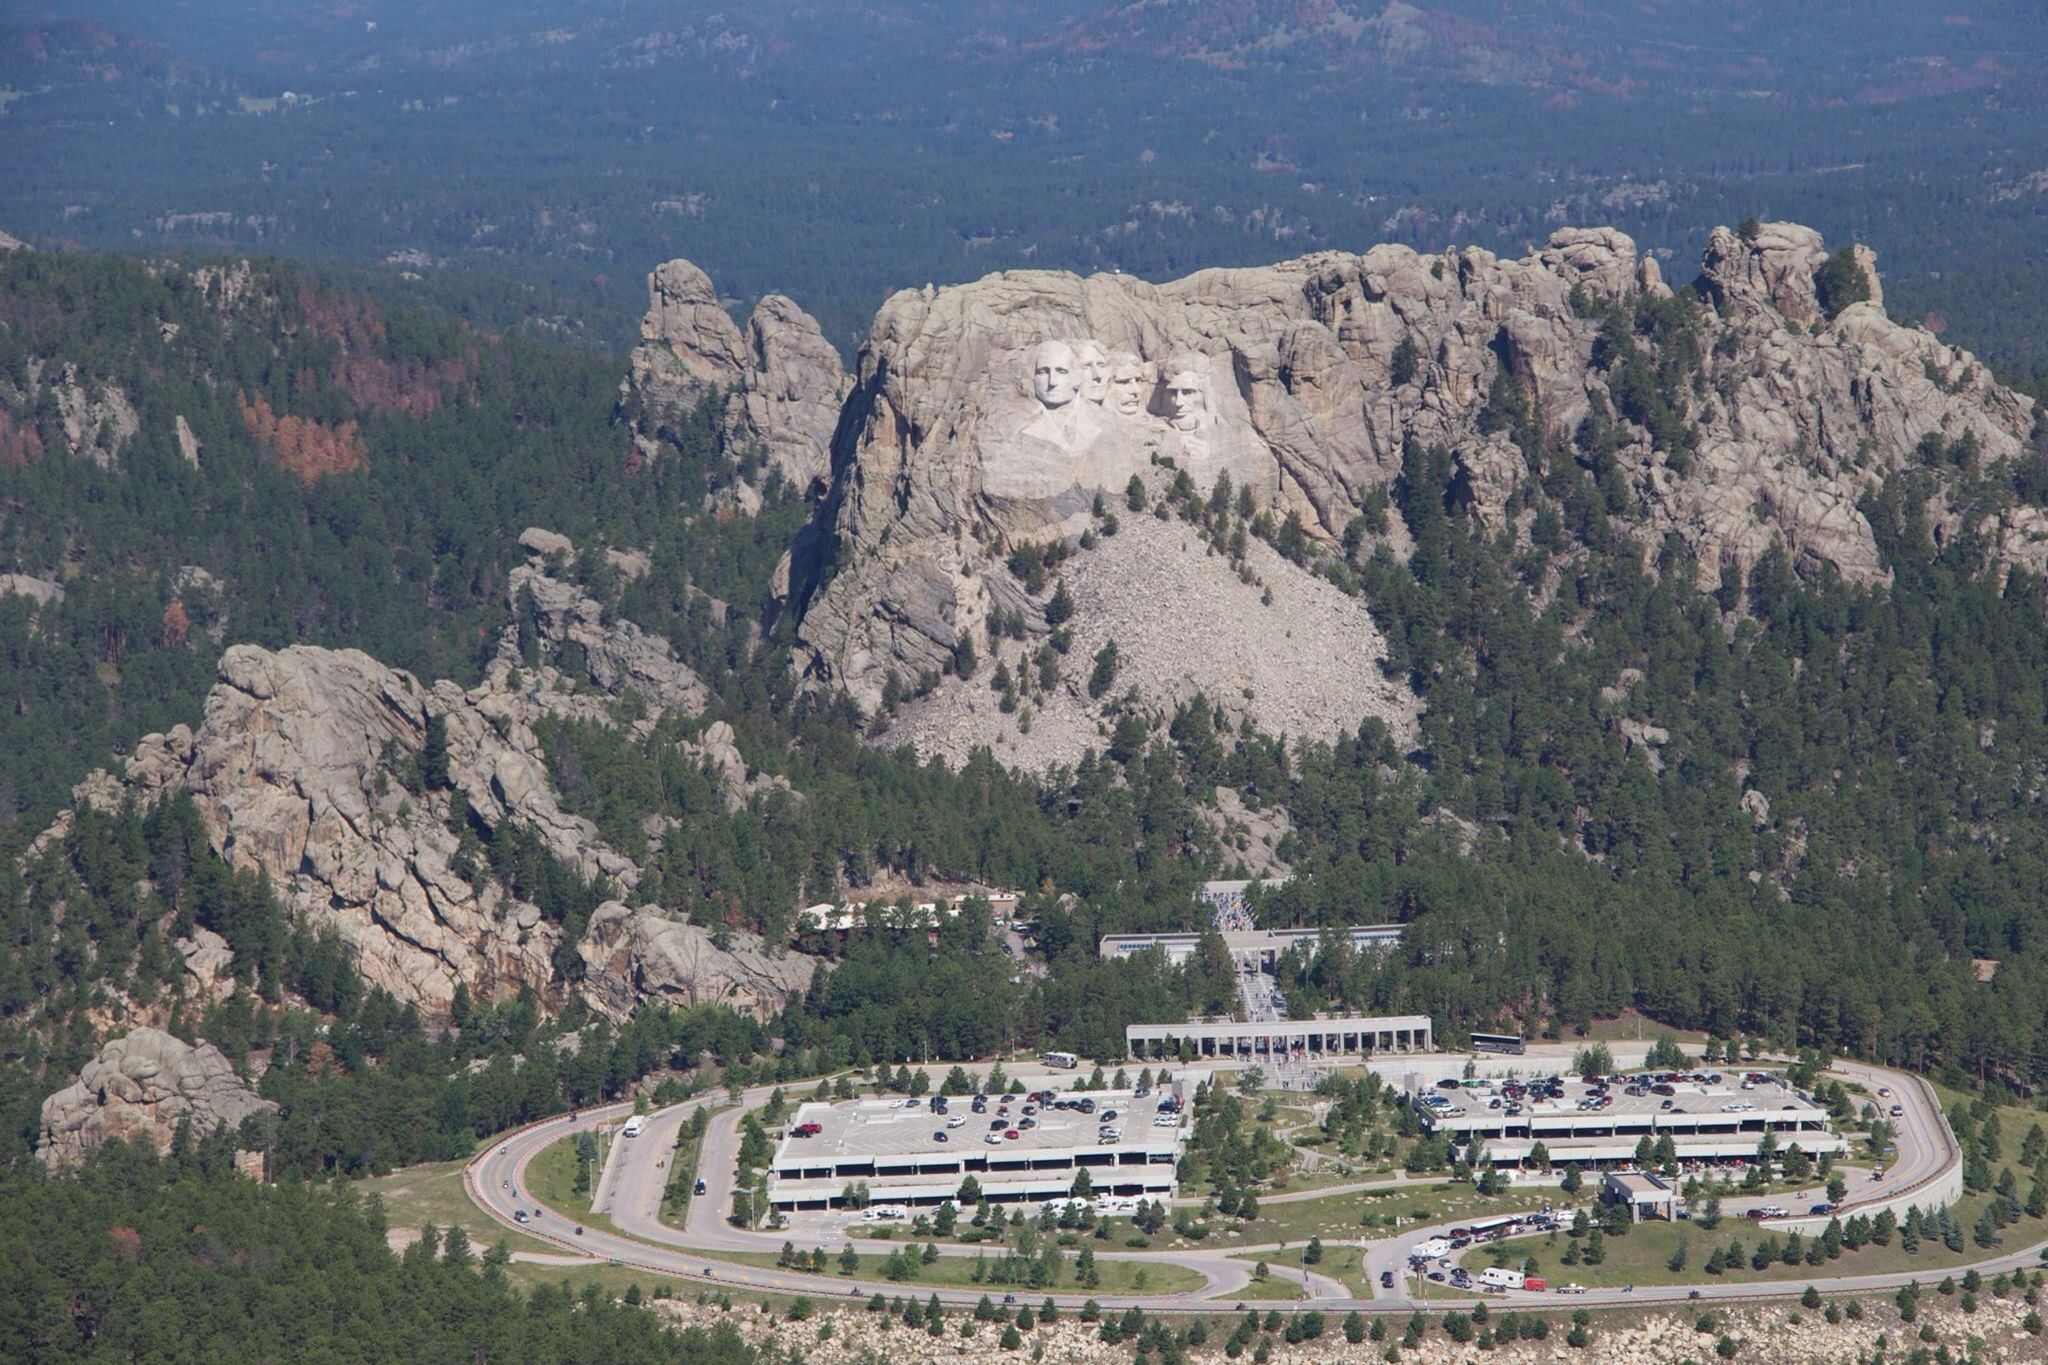 Mount Rushmore | National Parks | Pinterest: pinterest.com/pin/347340189983449120